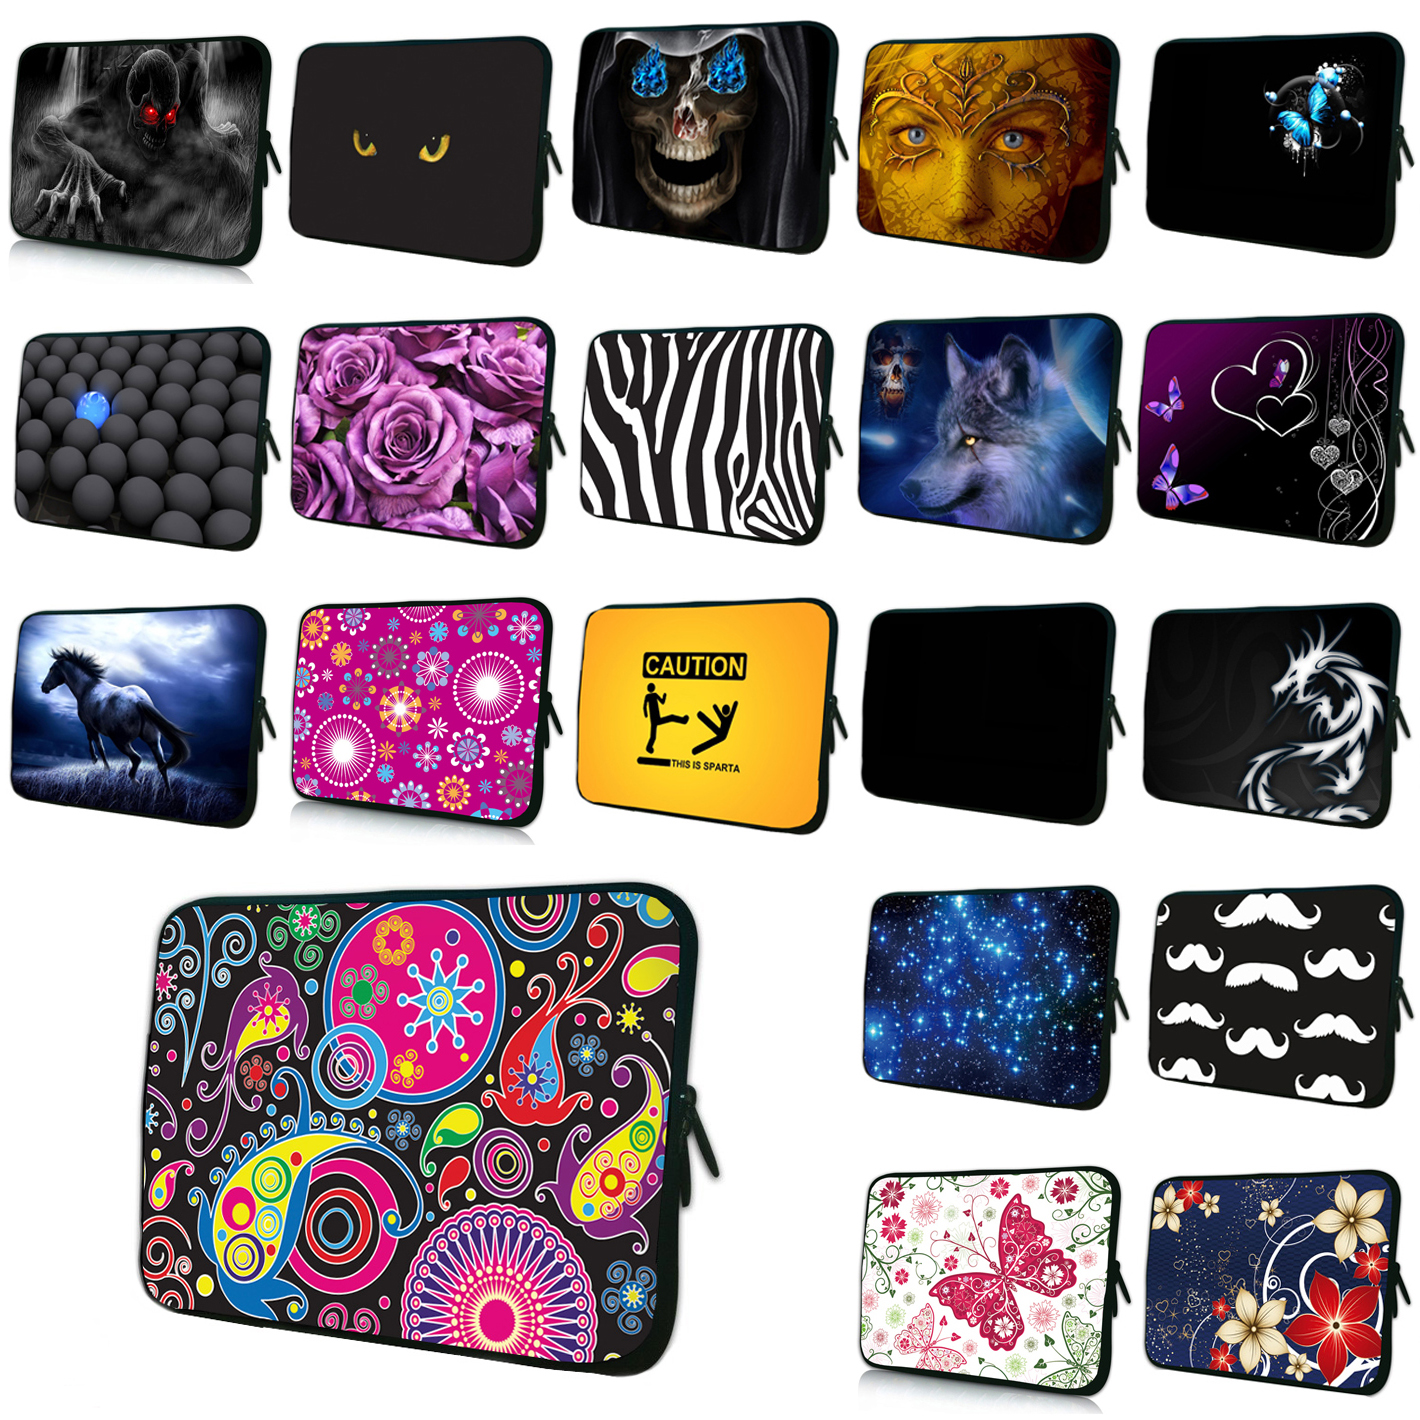 10 Tablet 10.1 7 8 Netbook Inner Bags Case Notebook Liner Sleeve Pouch Bag For Chuwi Xiaomi Apple 12 13 14 15 17 Briefcase